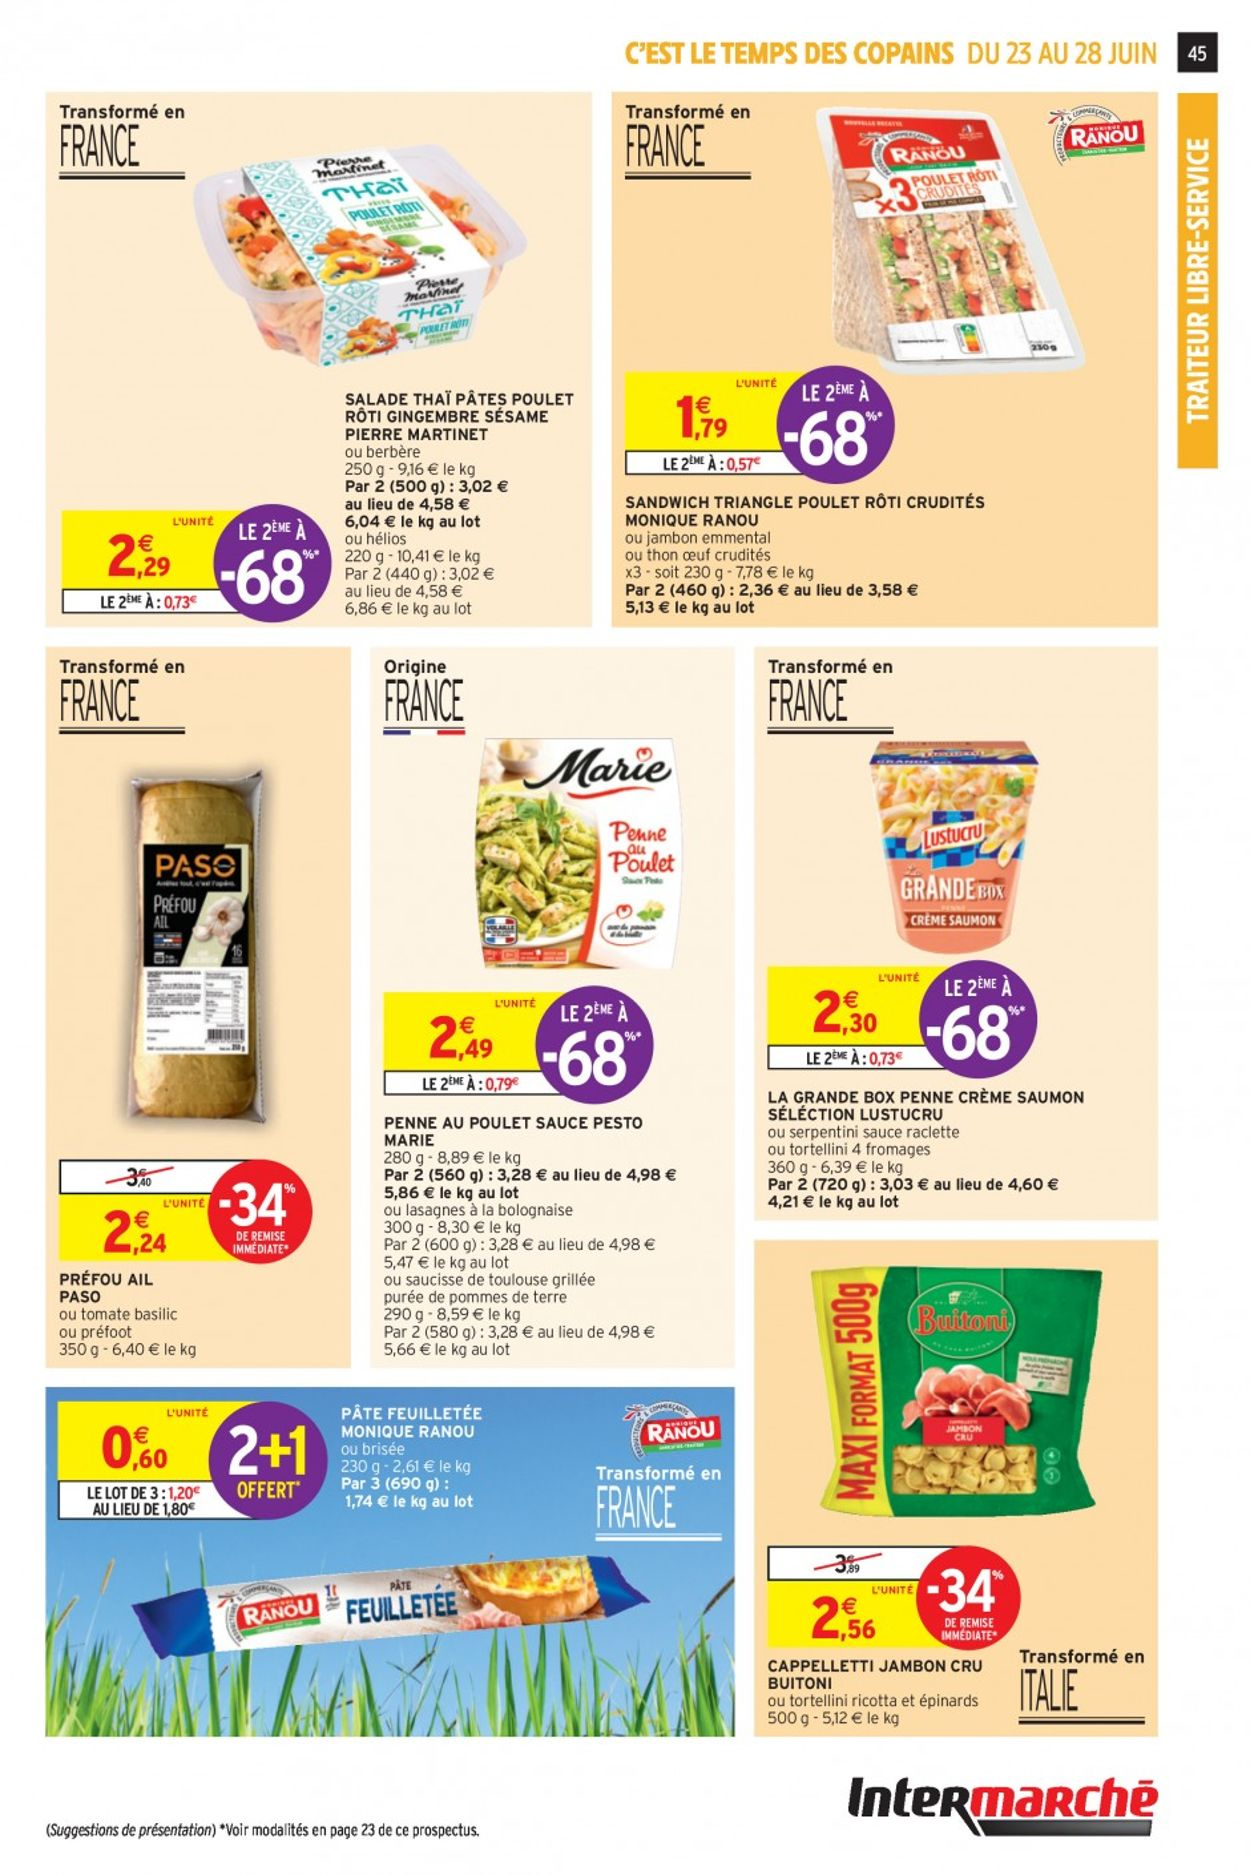 Intermarché Catalogue - 23.06-28.06.2020 (Page 45)